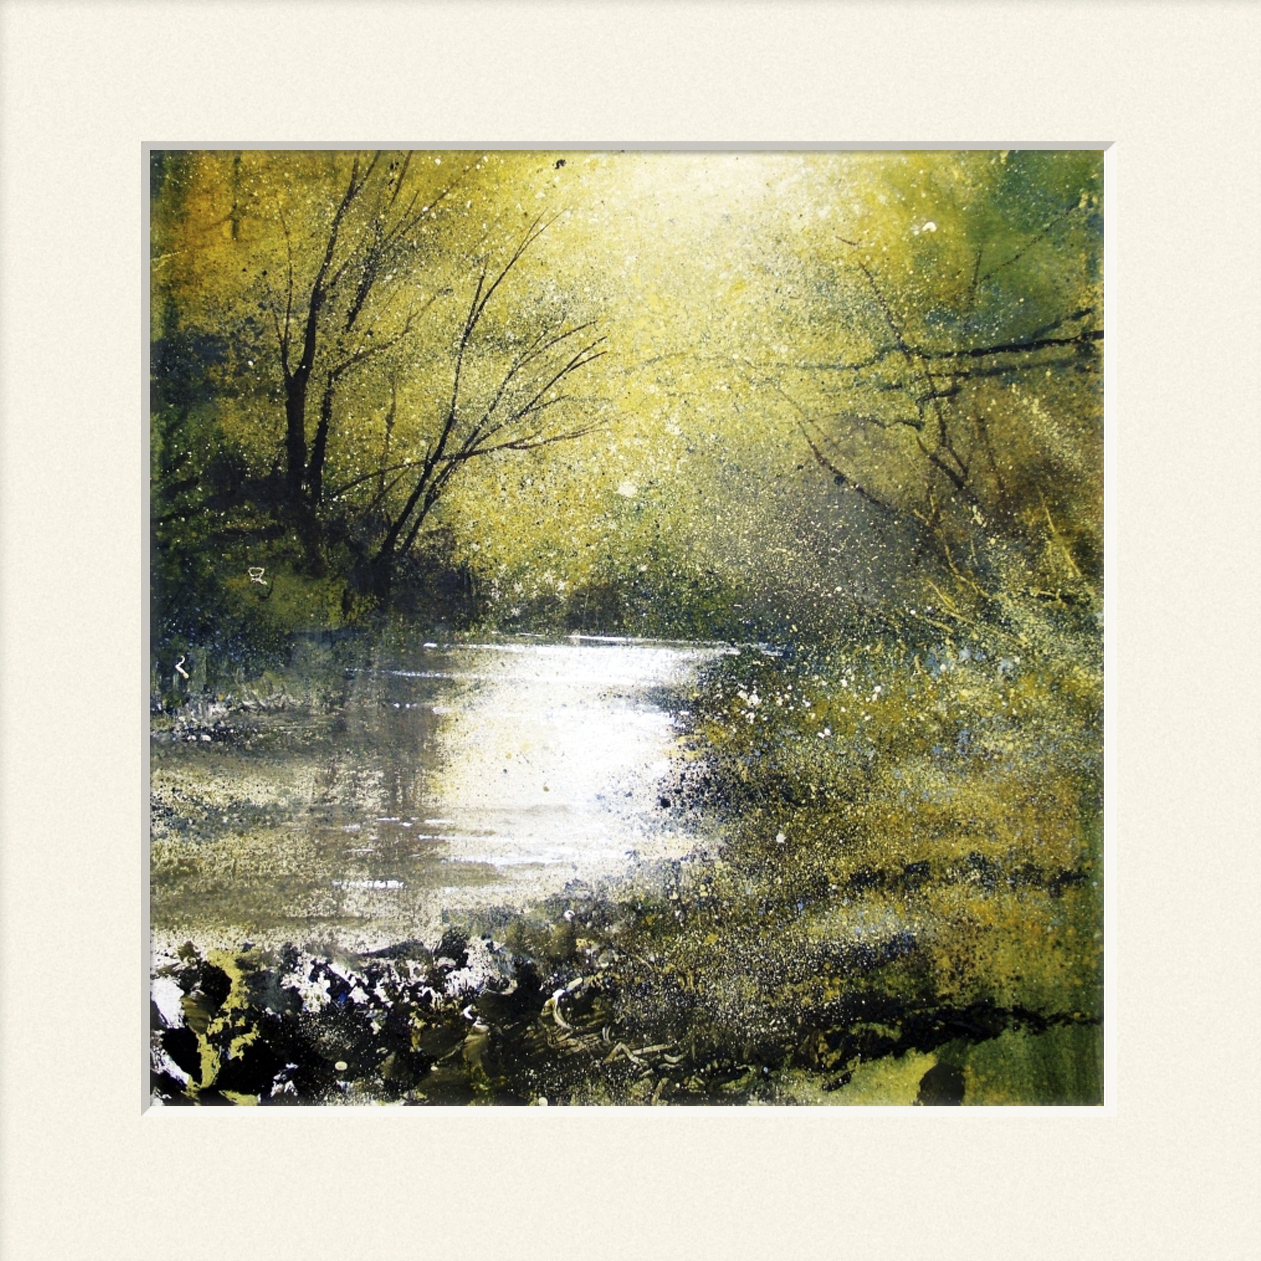 'Warm day on the river' print